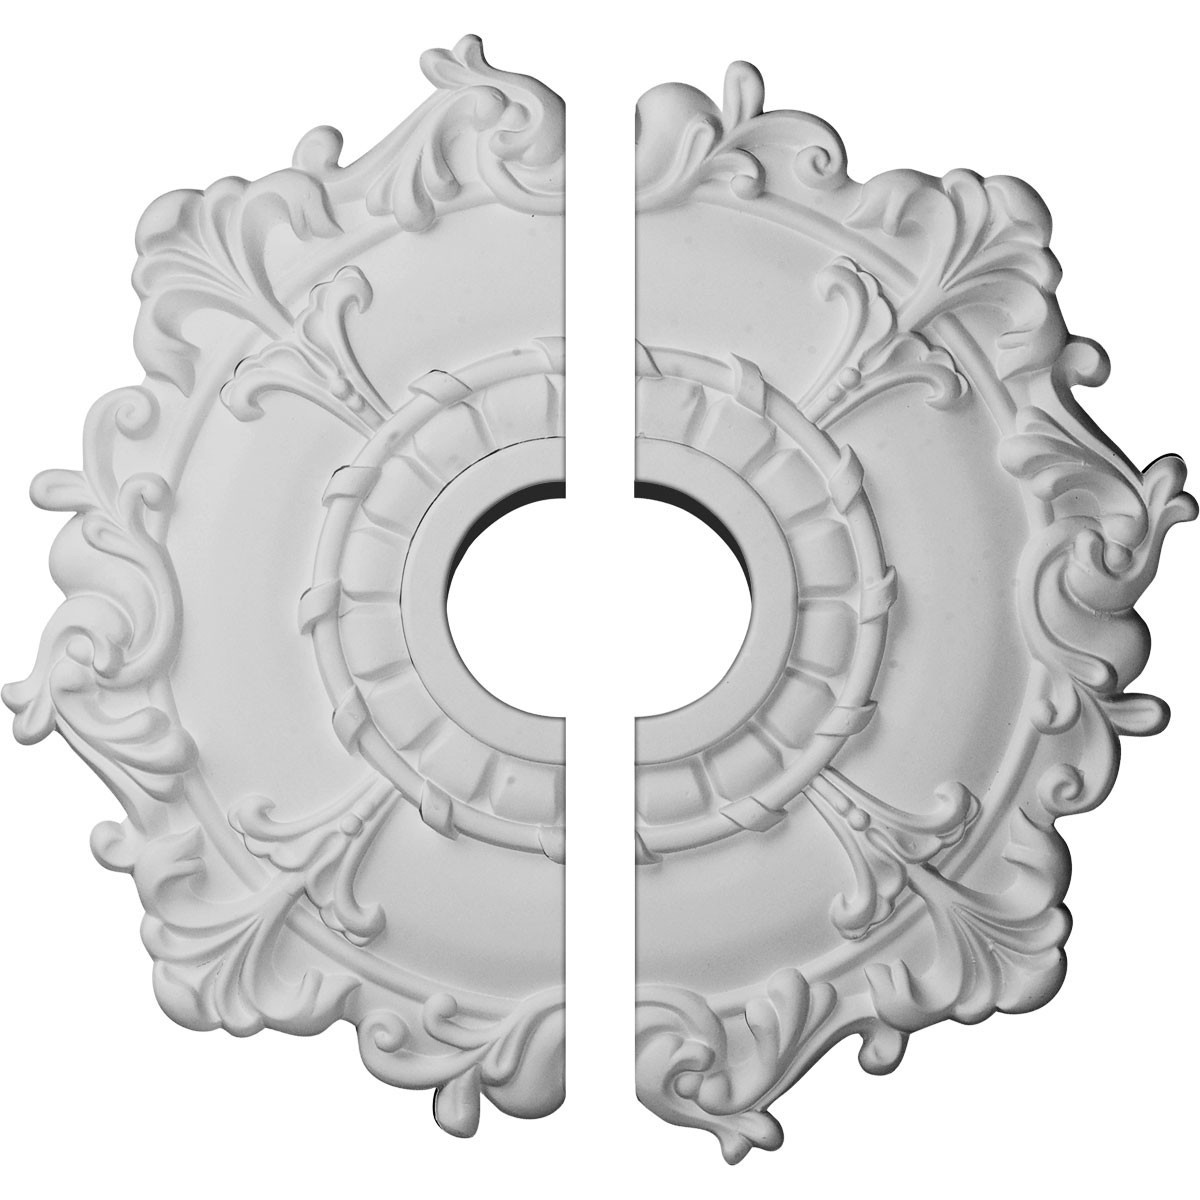 """EM-CM18RL2 - 18""""OD x 3 1/2""""ID x 1 1/2""""P Riley Ceiling Medallion, Two Piece (Fits Canopies up to 4 5/8"""")"""